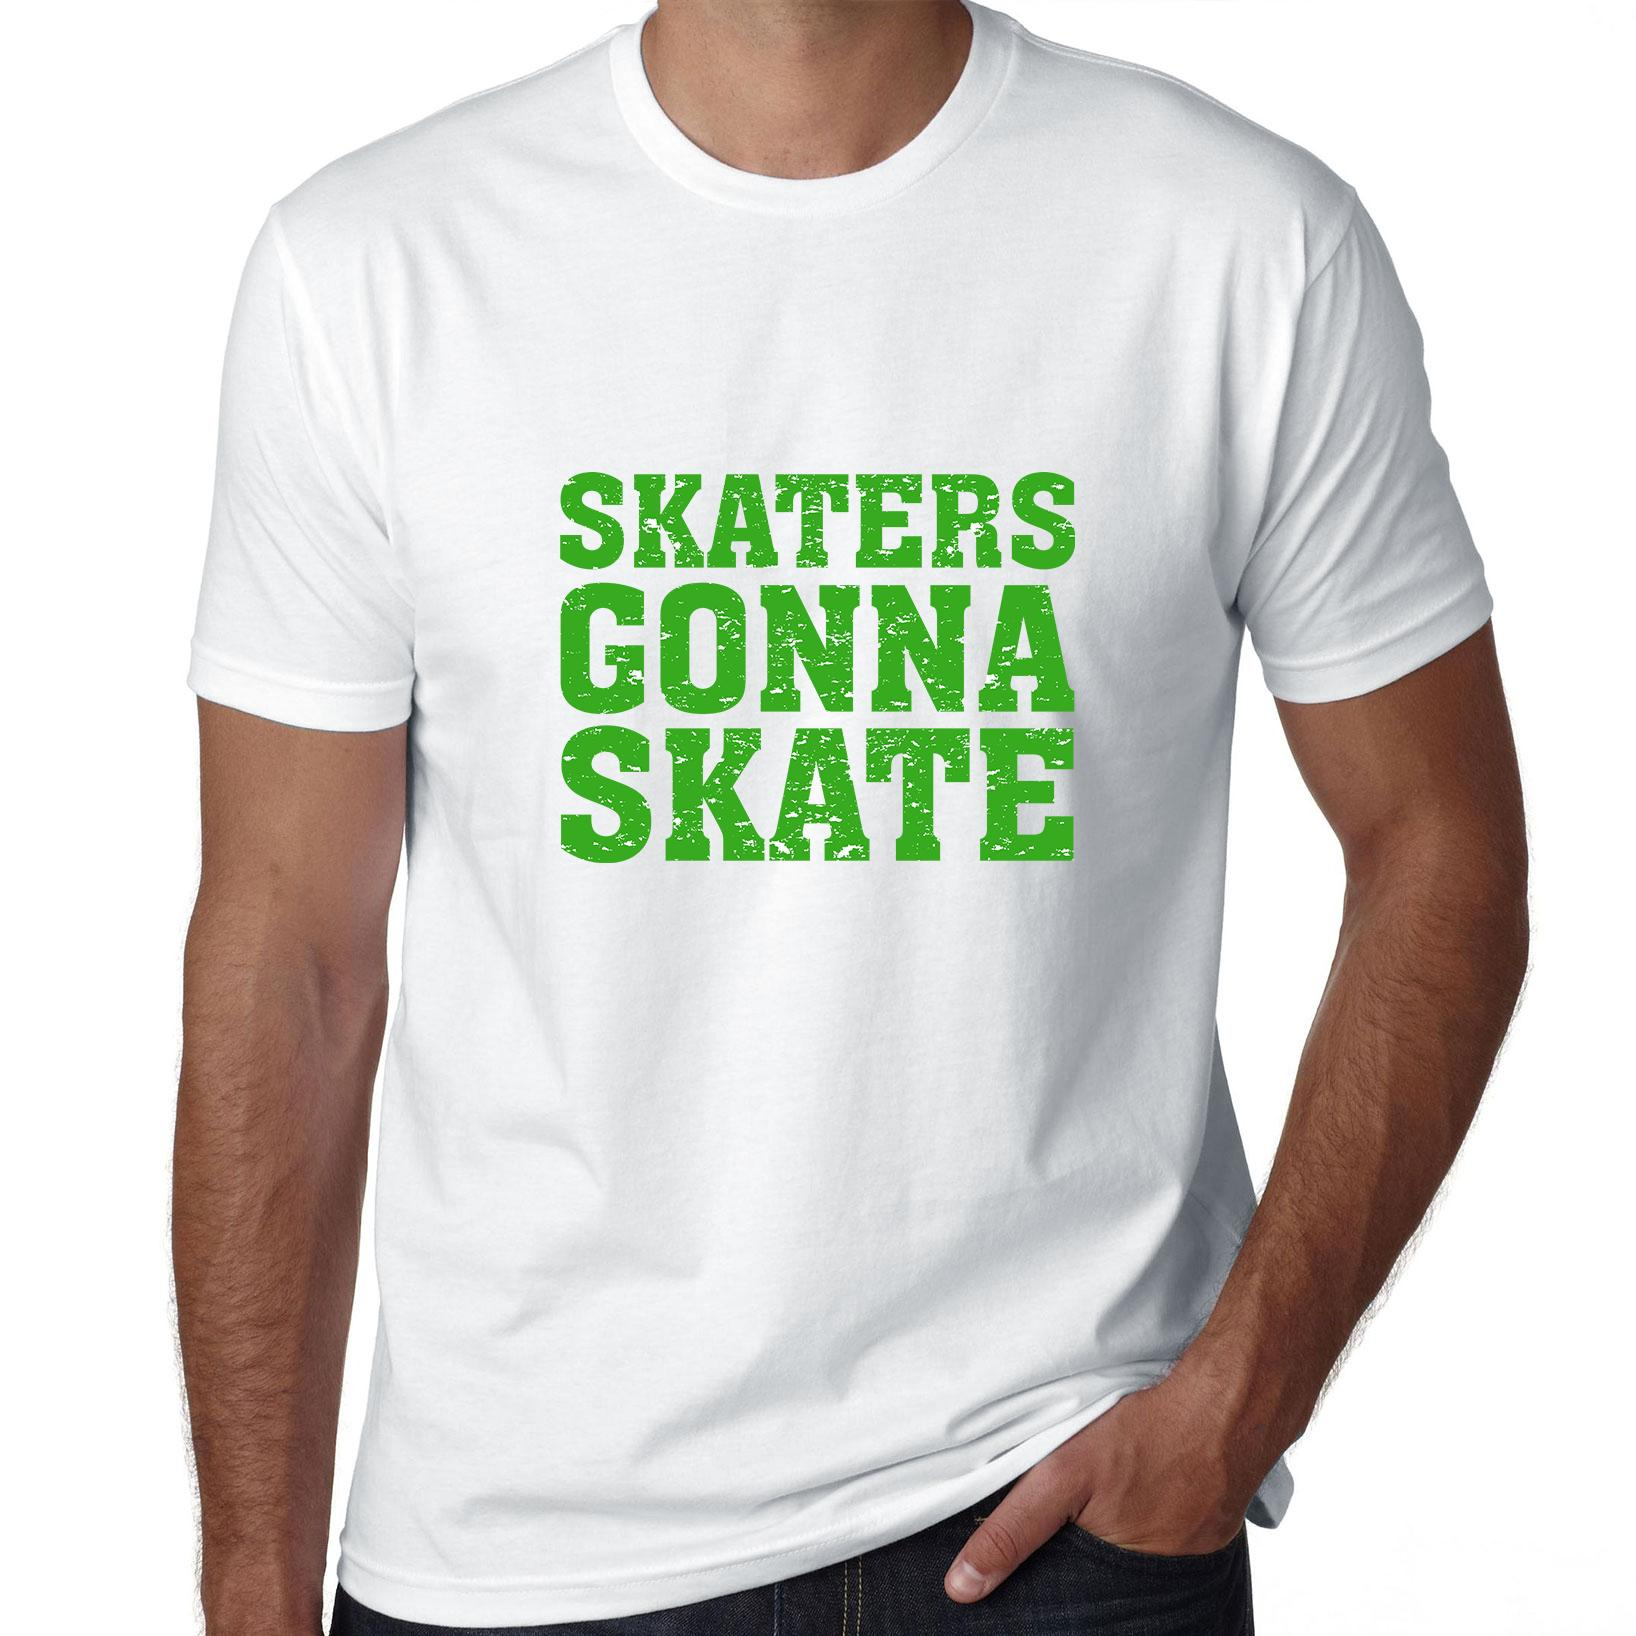 Hip Skaters Gonna Skate Men's T-Shirt by Hollywood Thread